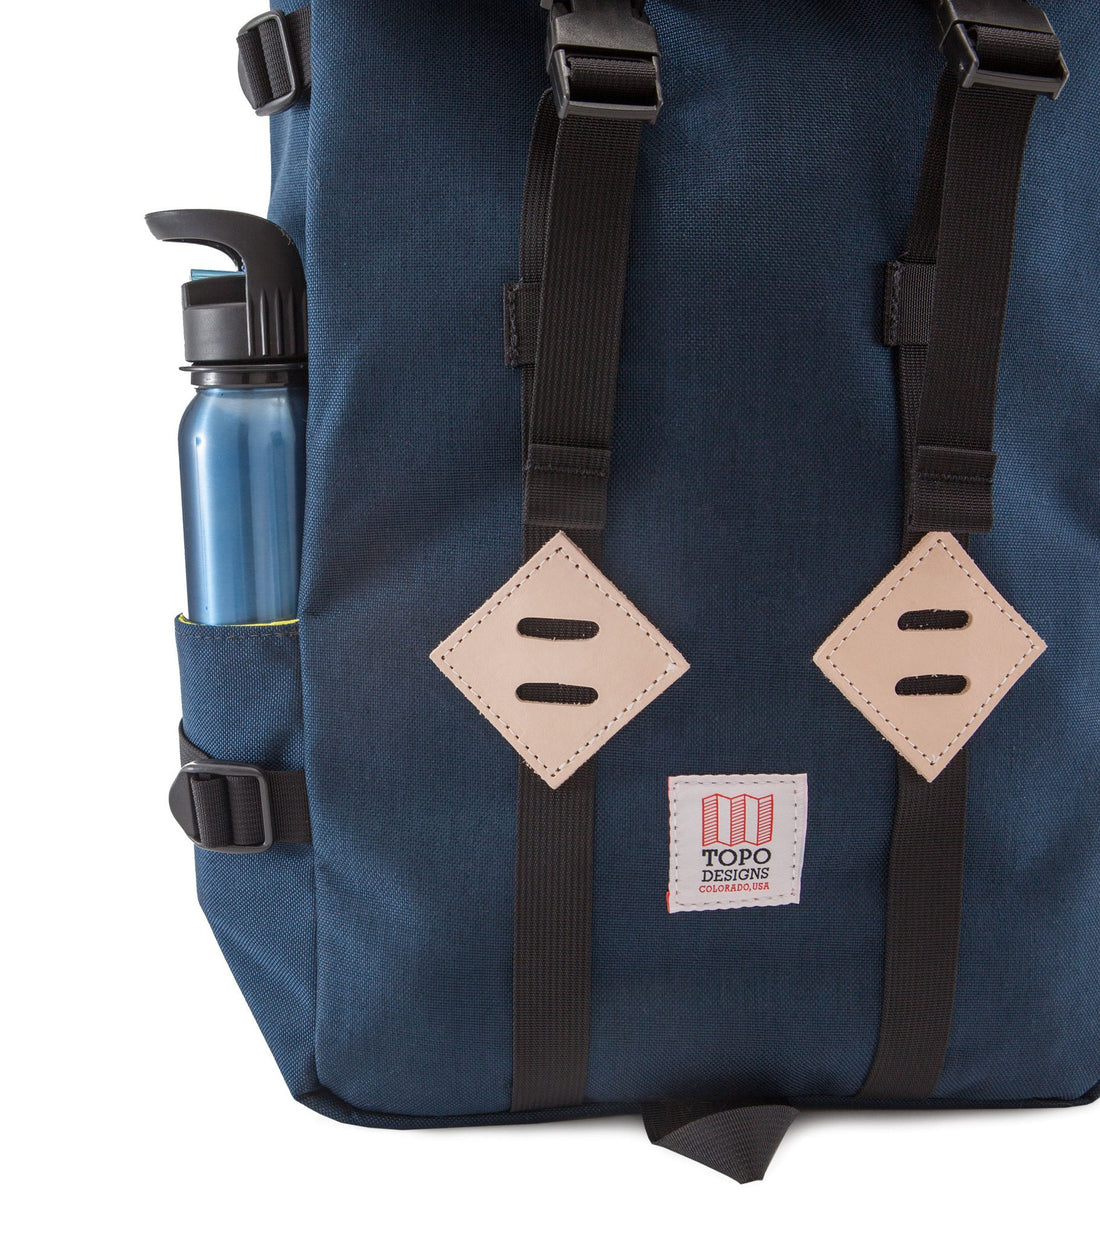 Topo Designs 22L Klettersack - Bags/Luggage - Iron and Resin